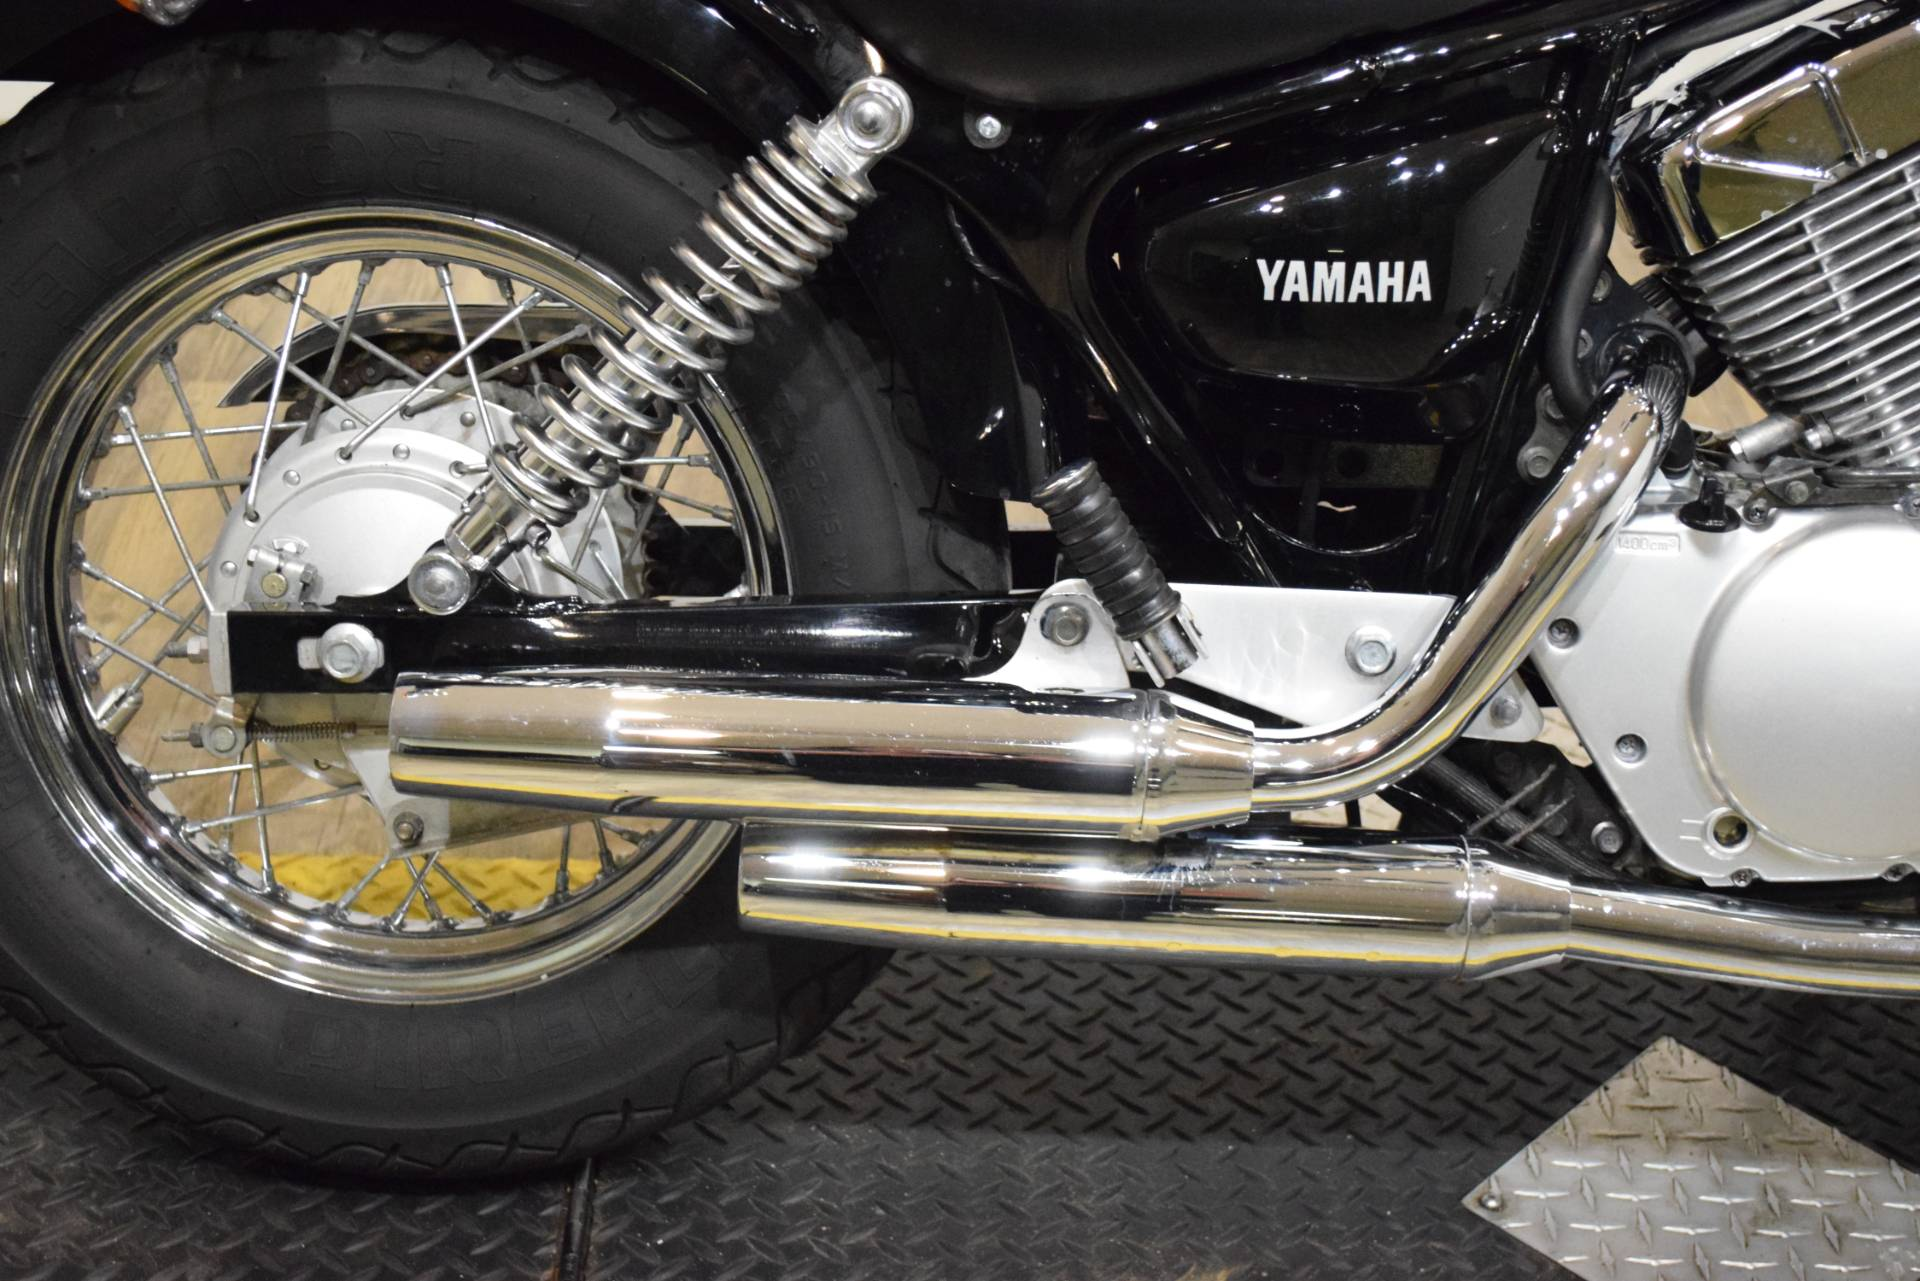 2003 Yamaha Virago 250 in Wauconda, Illinois